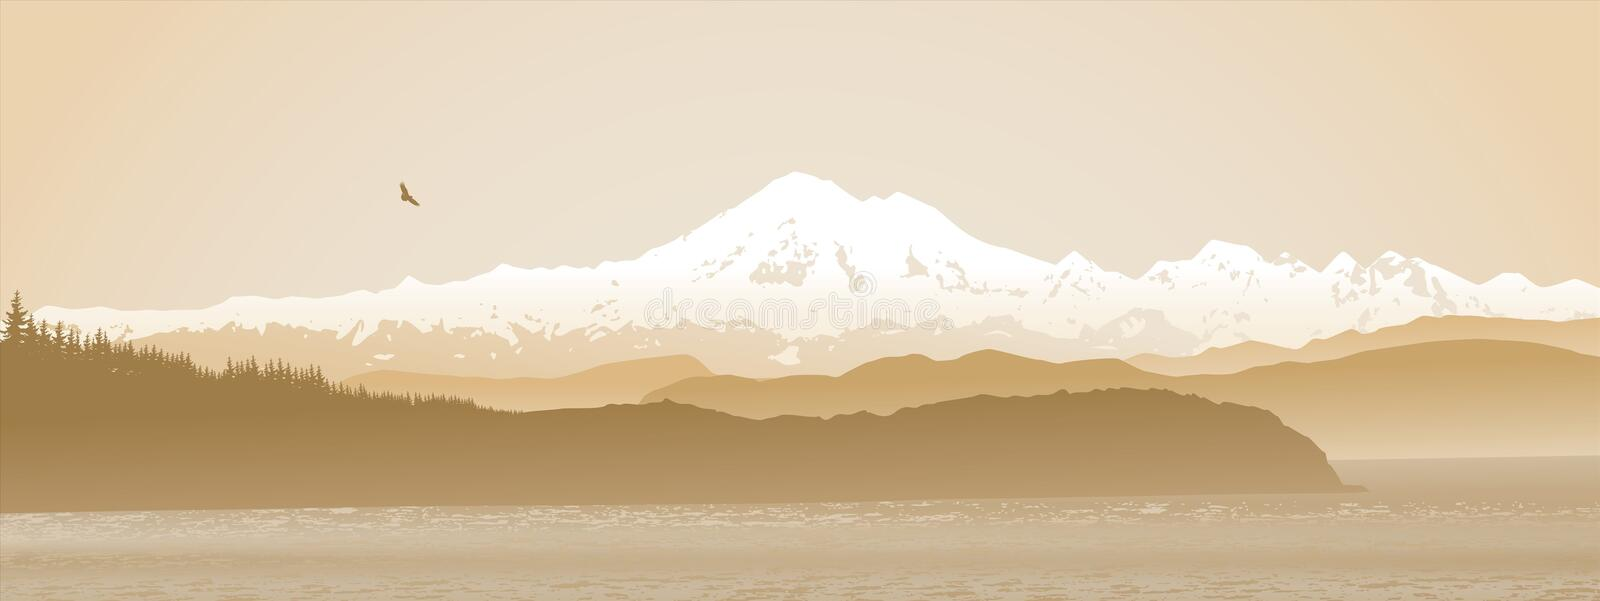 Mount Baker, Washington State panoramic in sepia royalty free illustration